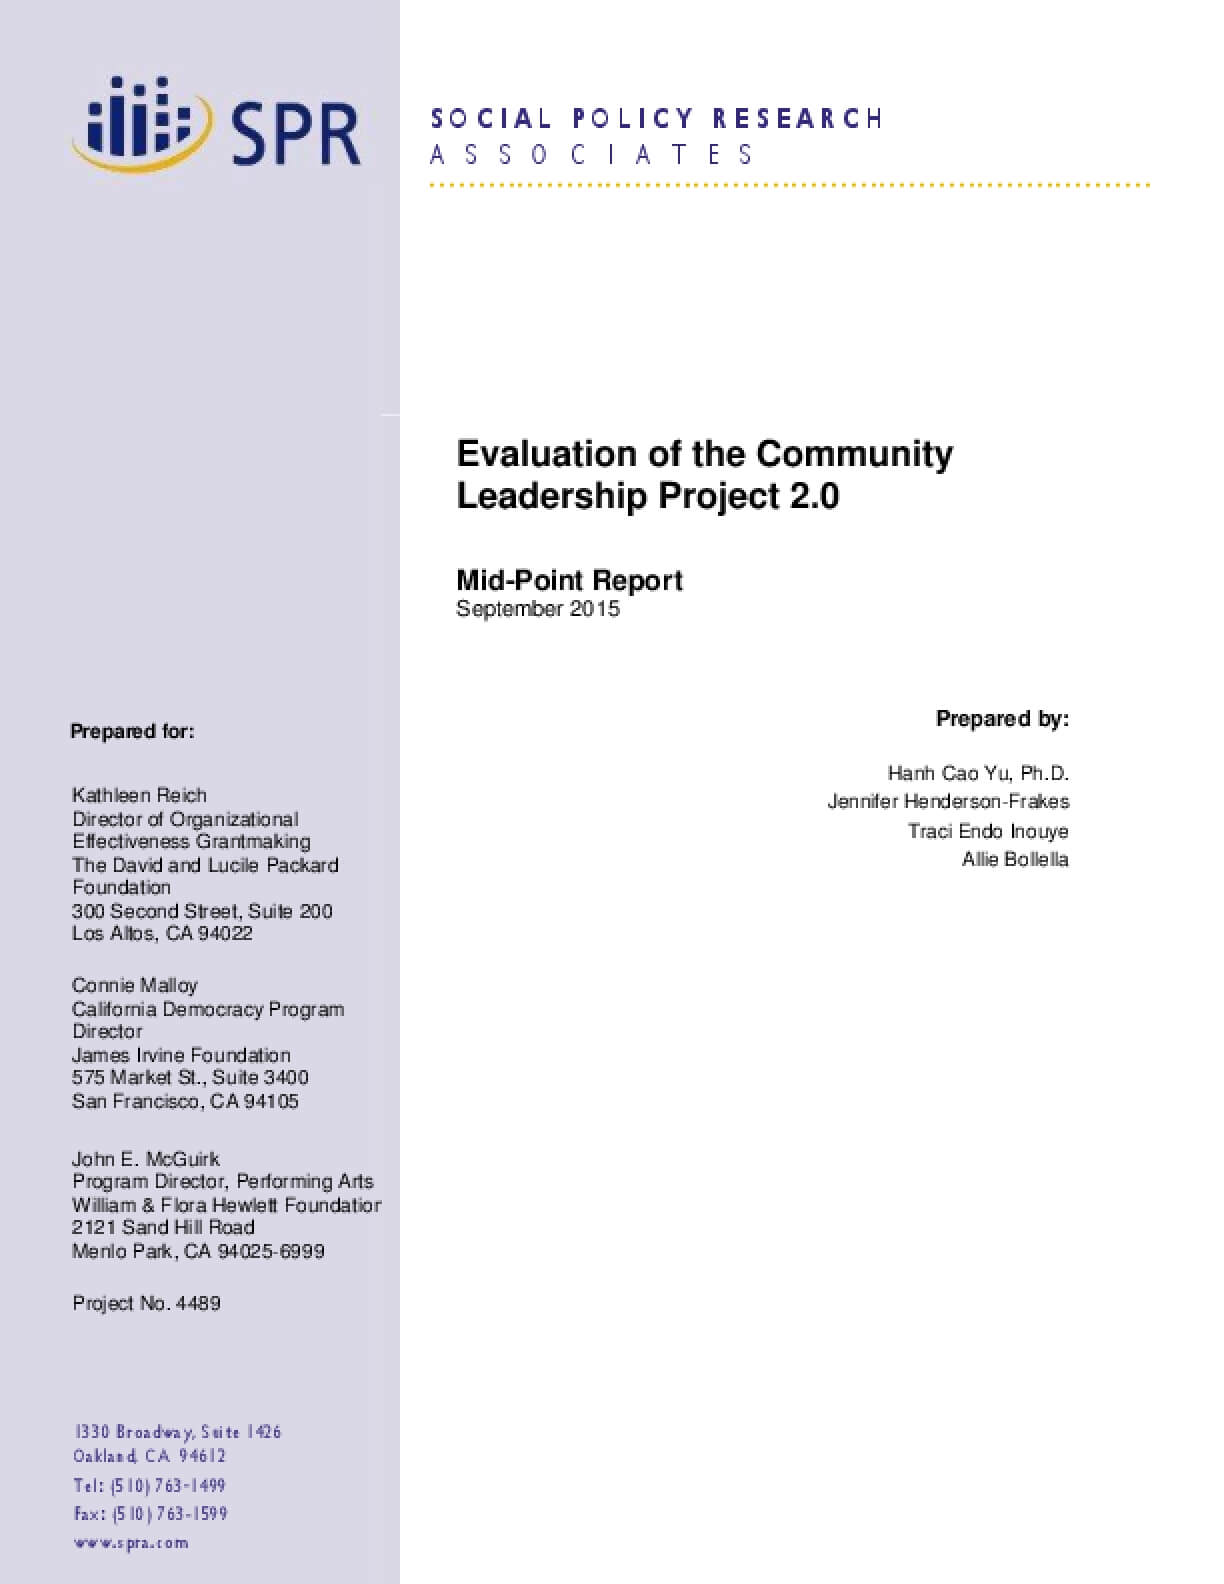 Evaluation of the Community Leadership Project 2.0: Midpoint Report